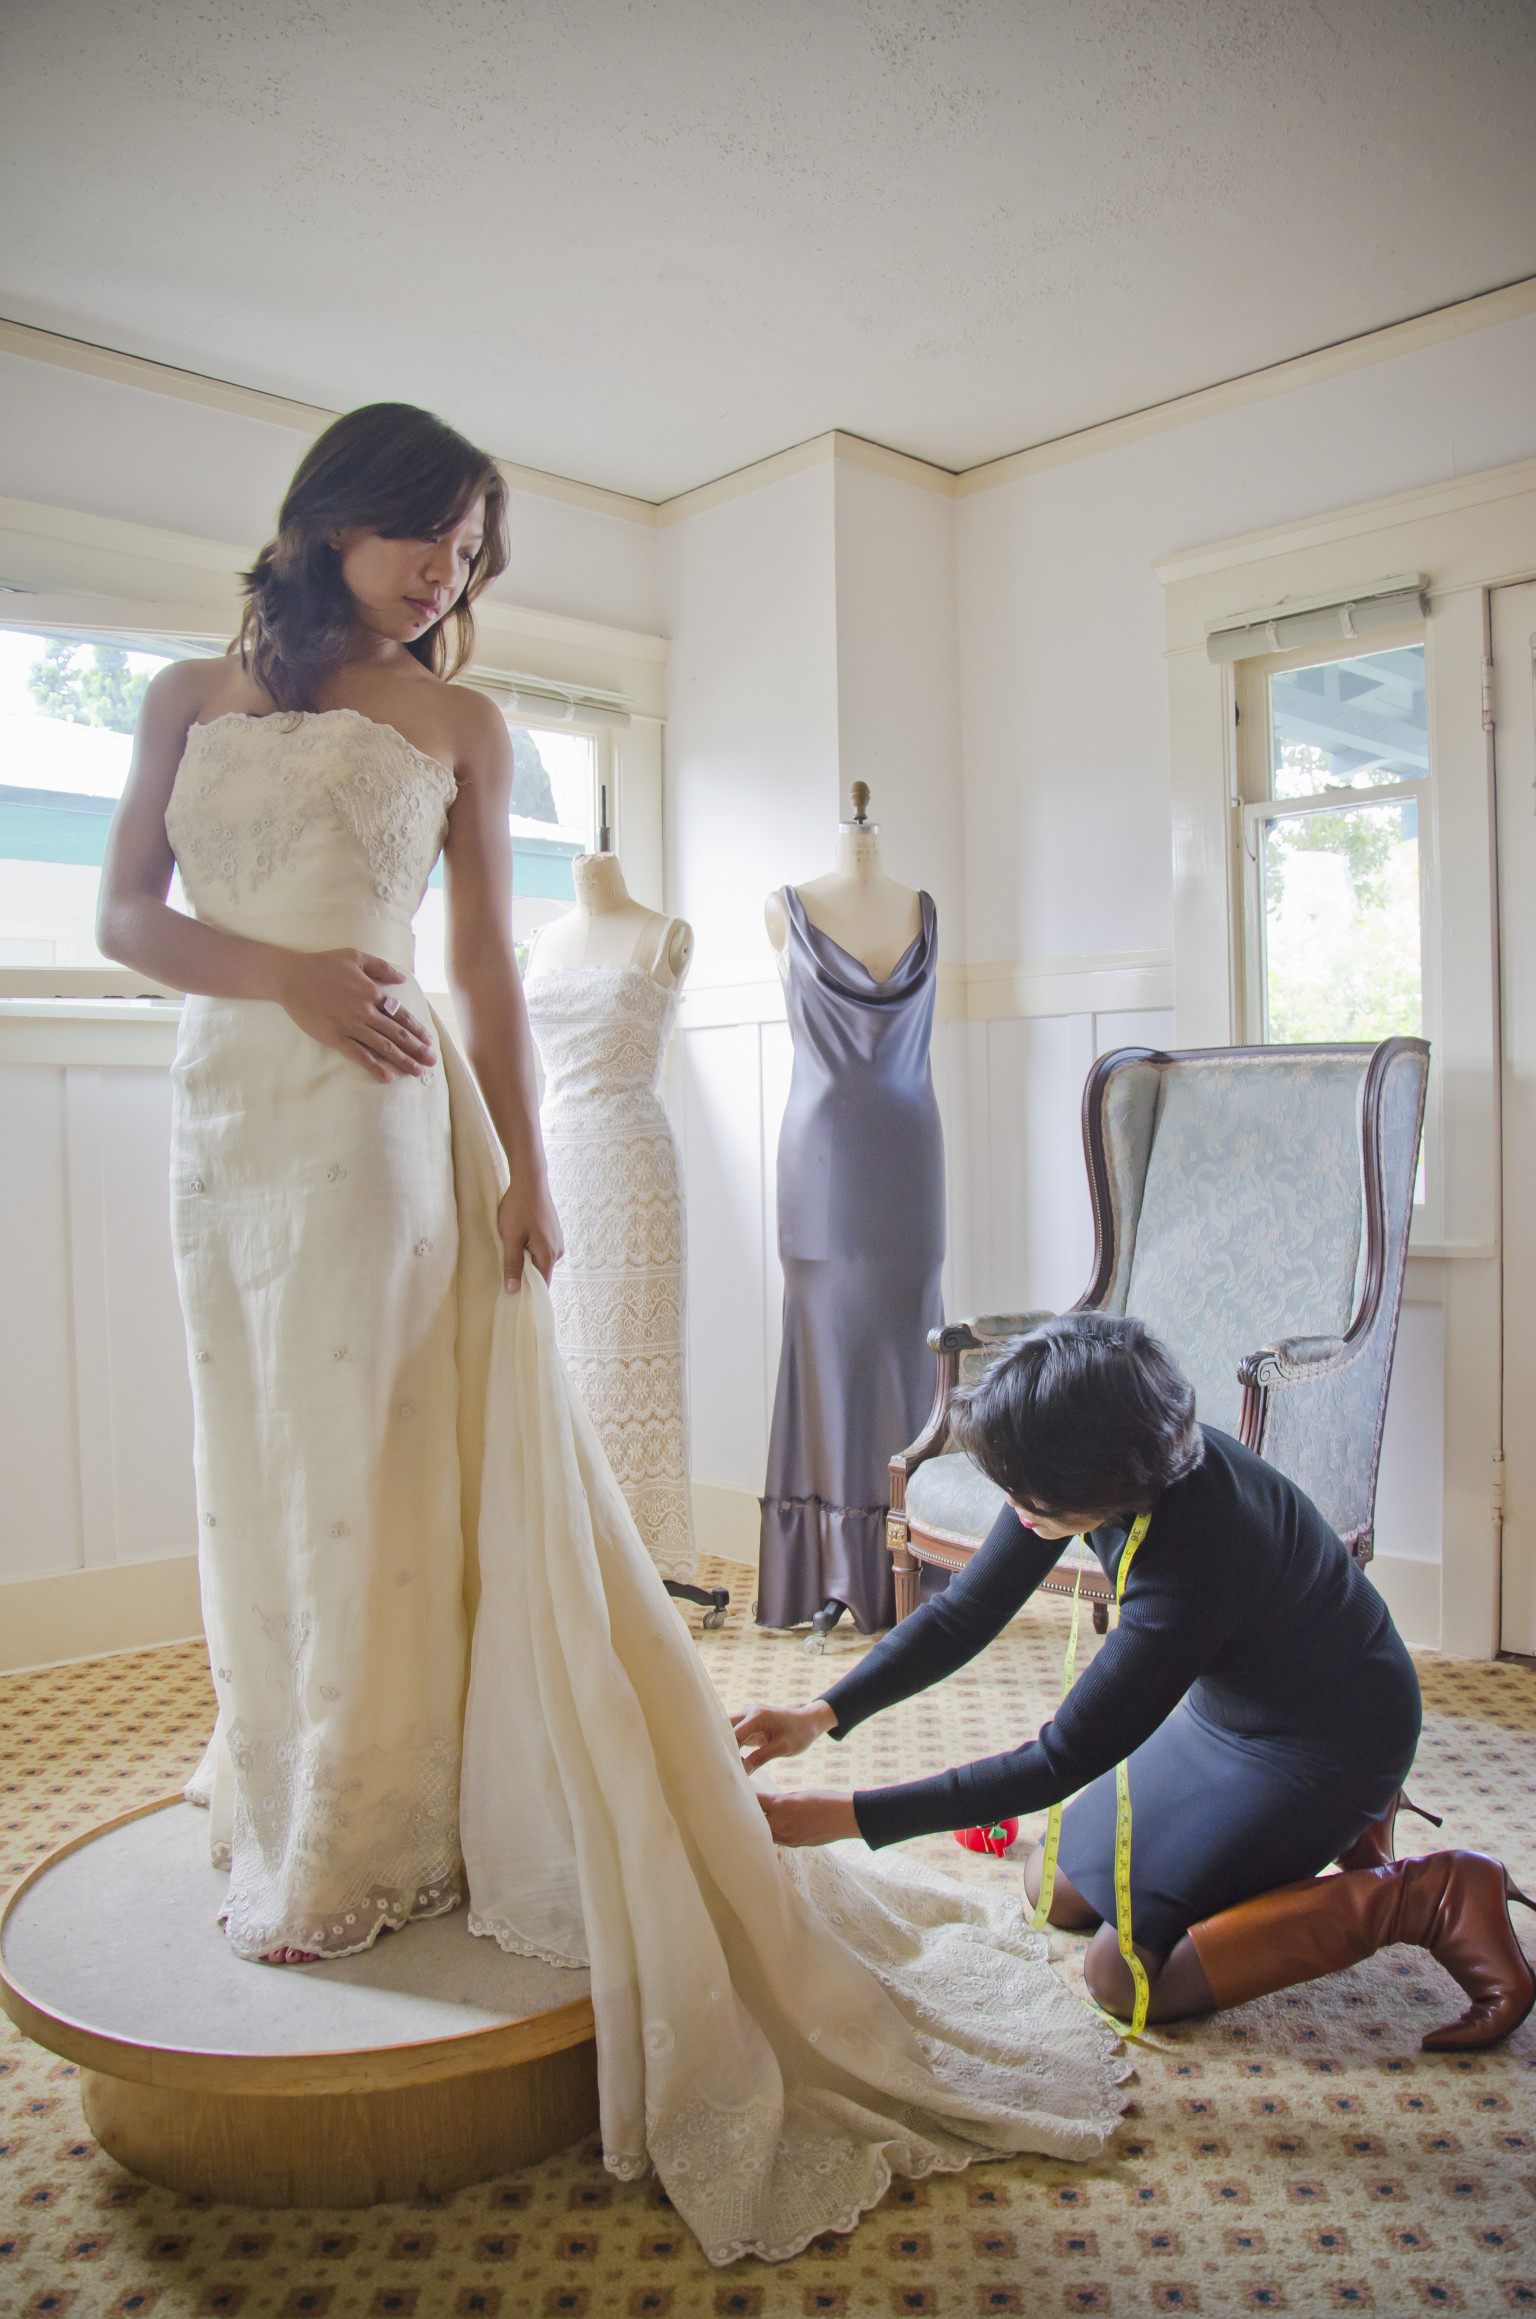 7 affordable ways to make b shop wedding dresses 7 Affordable Ways to Make Your Wedding Gown Look More Expensive HuffPost